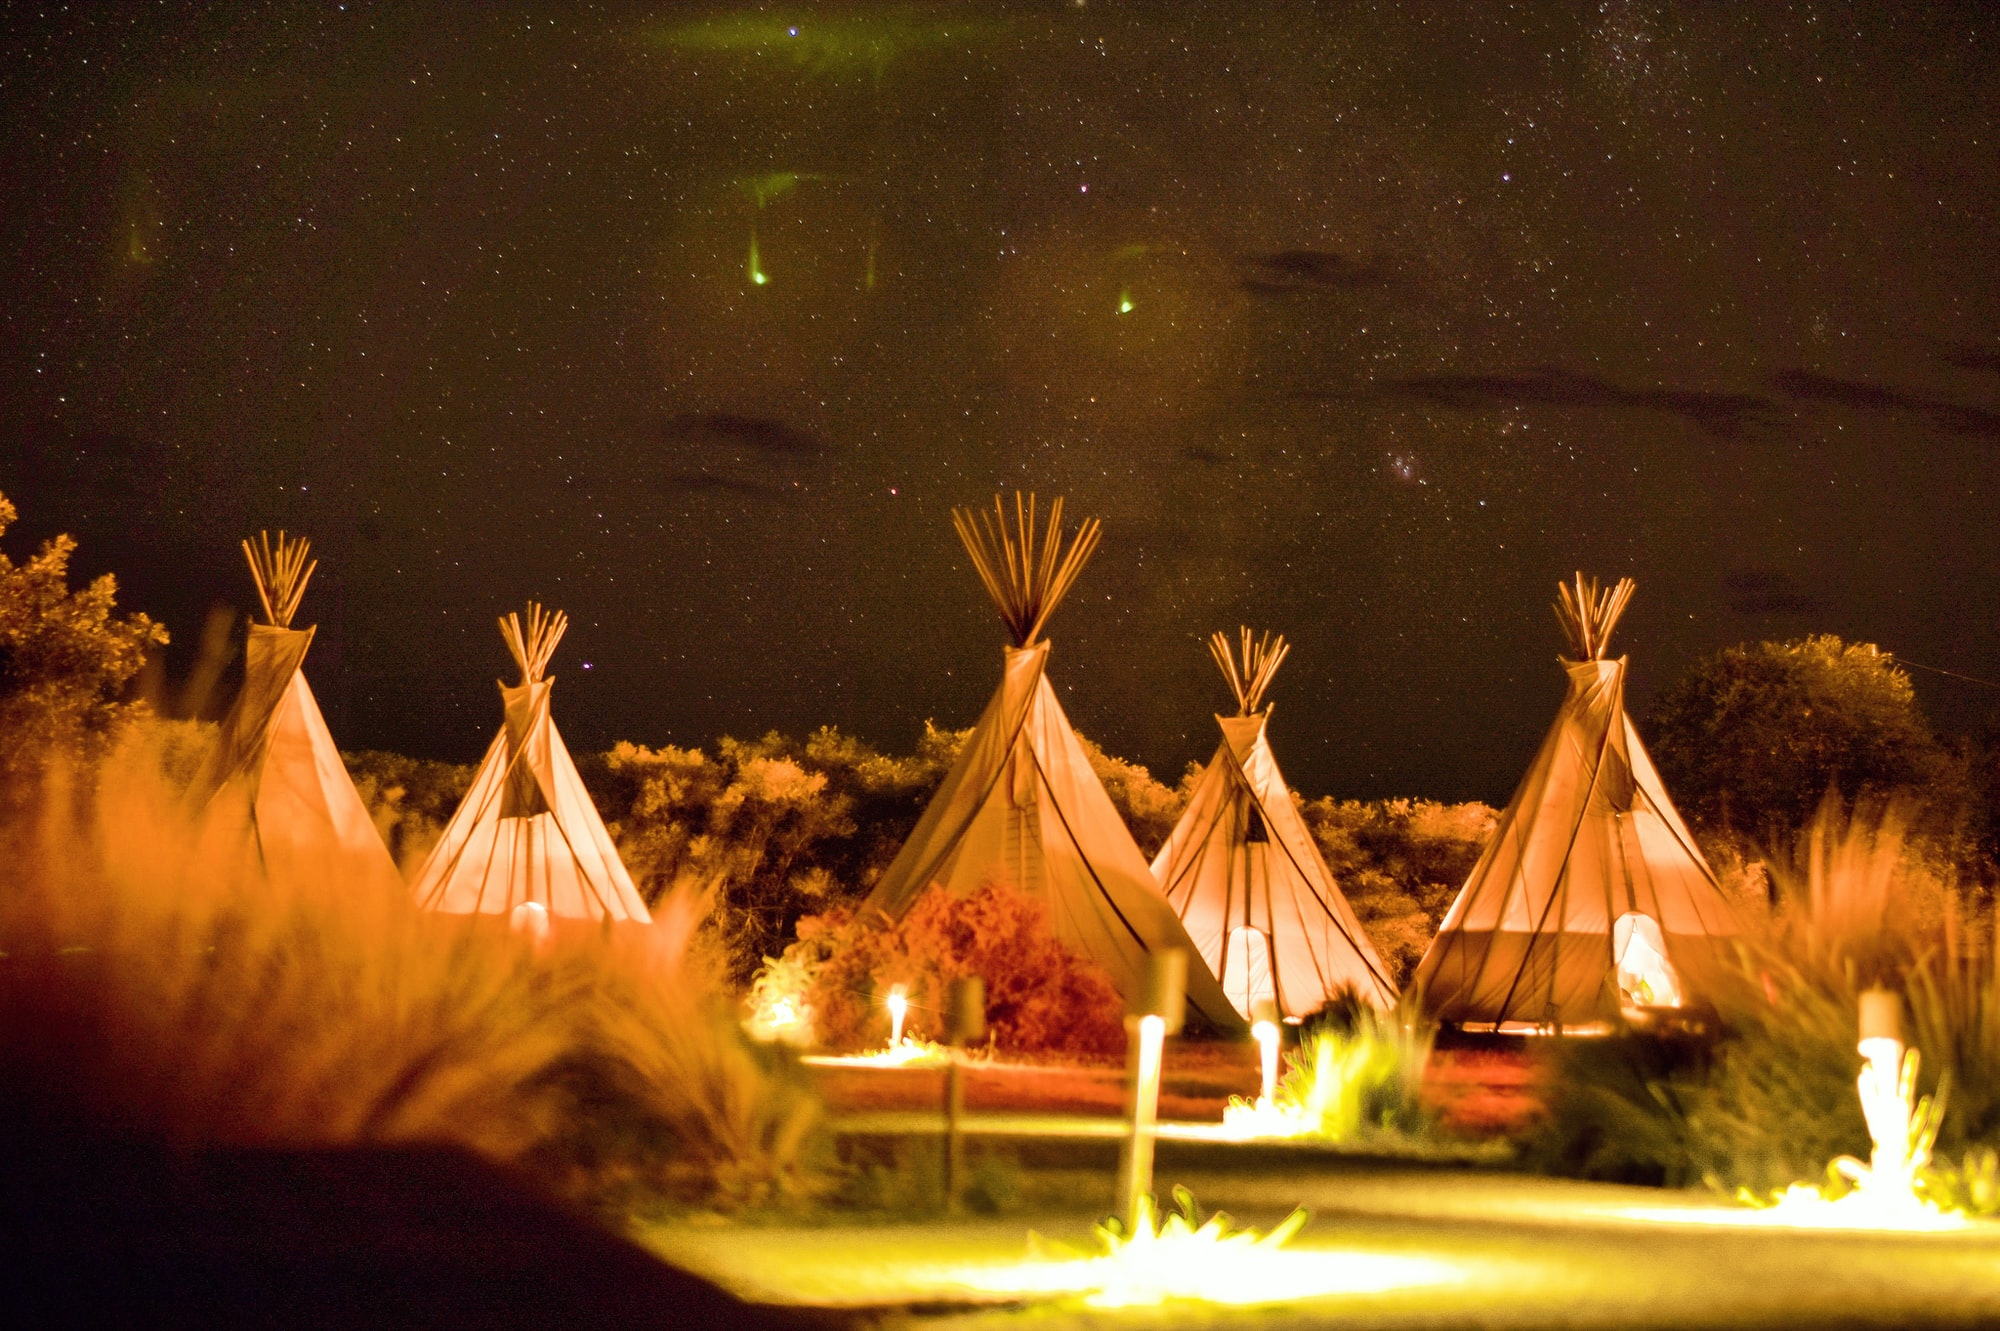 Under a starry night at El Cosmico in Marfa Texas